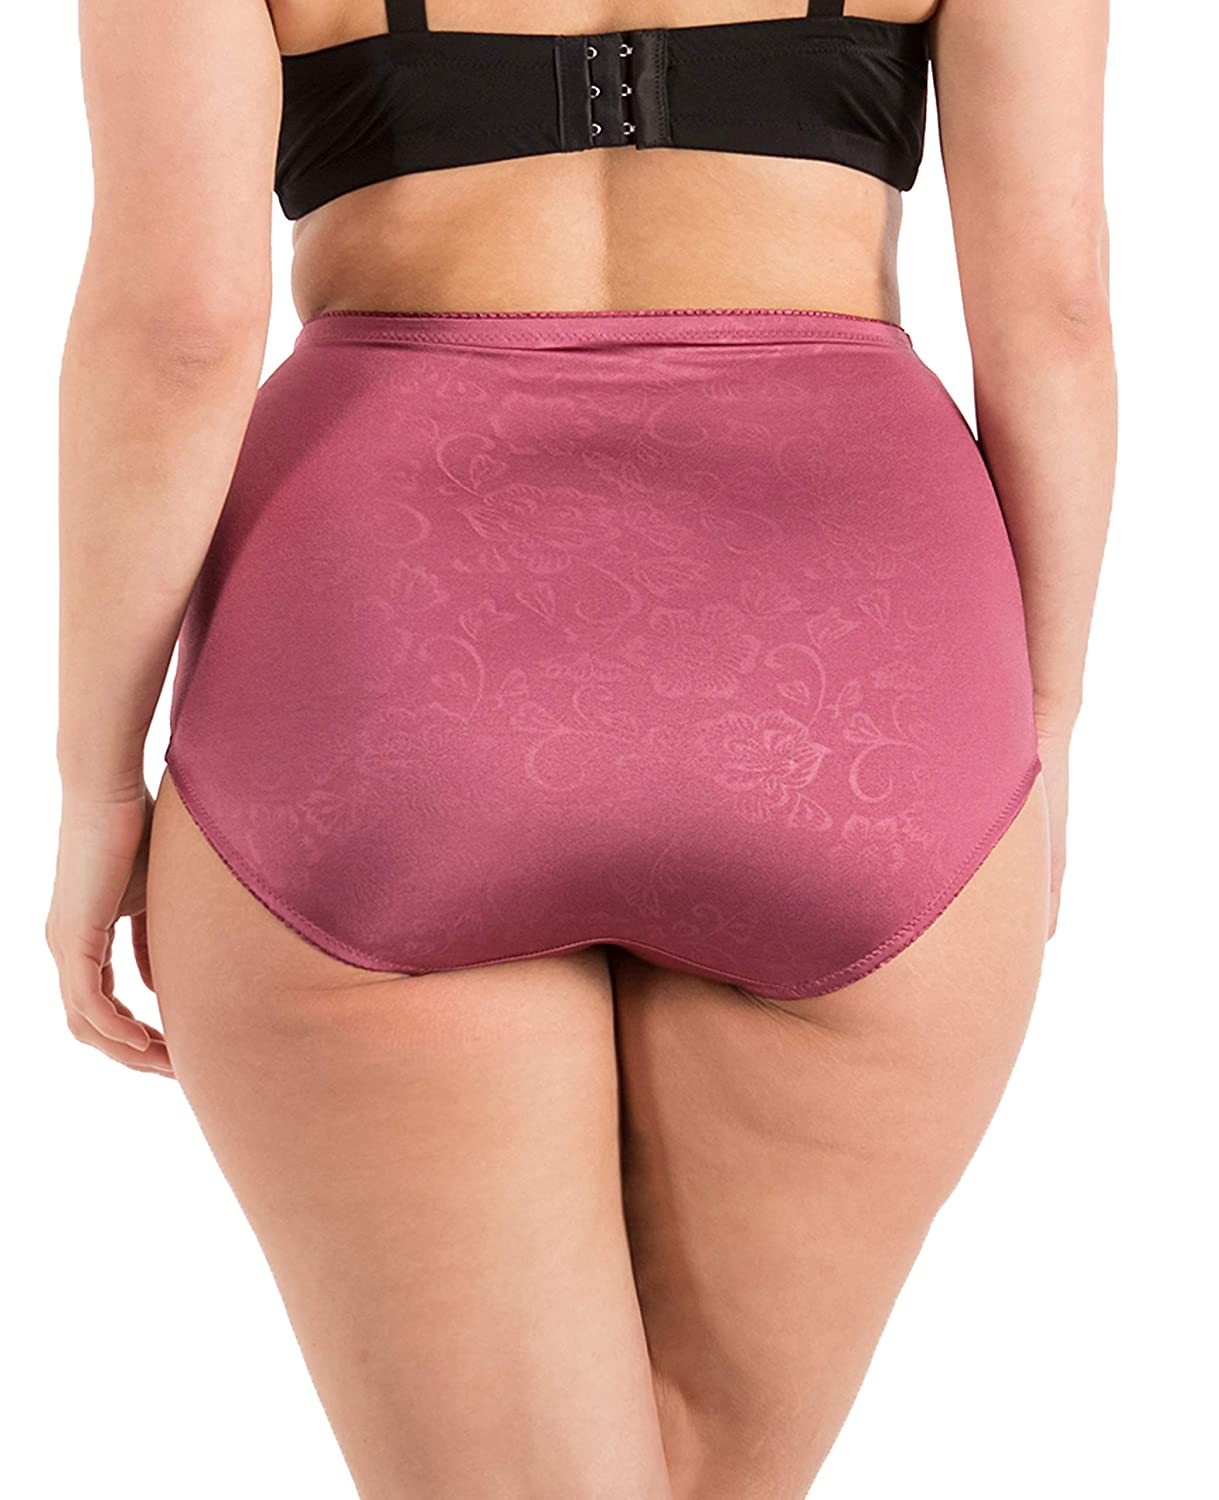 Barbras 6 Pack Womens High-Waist Tummy Control Girdle Panties